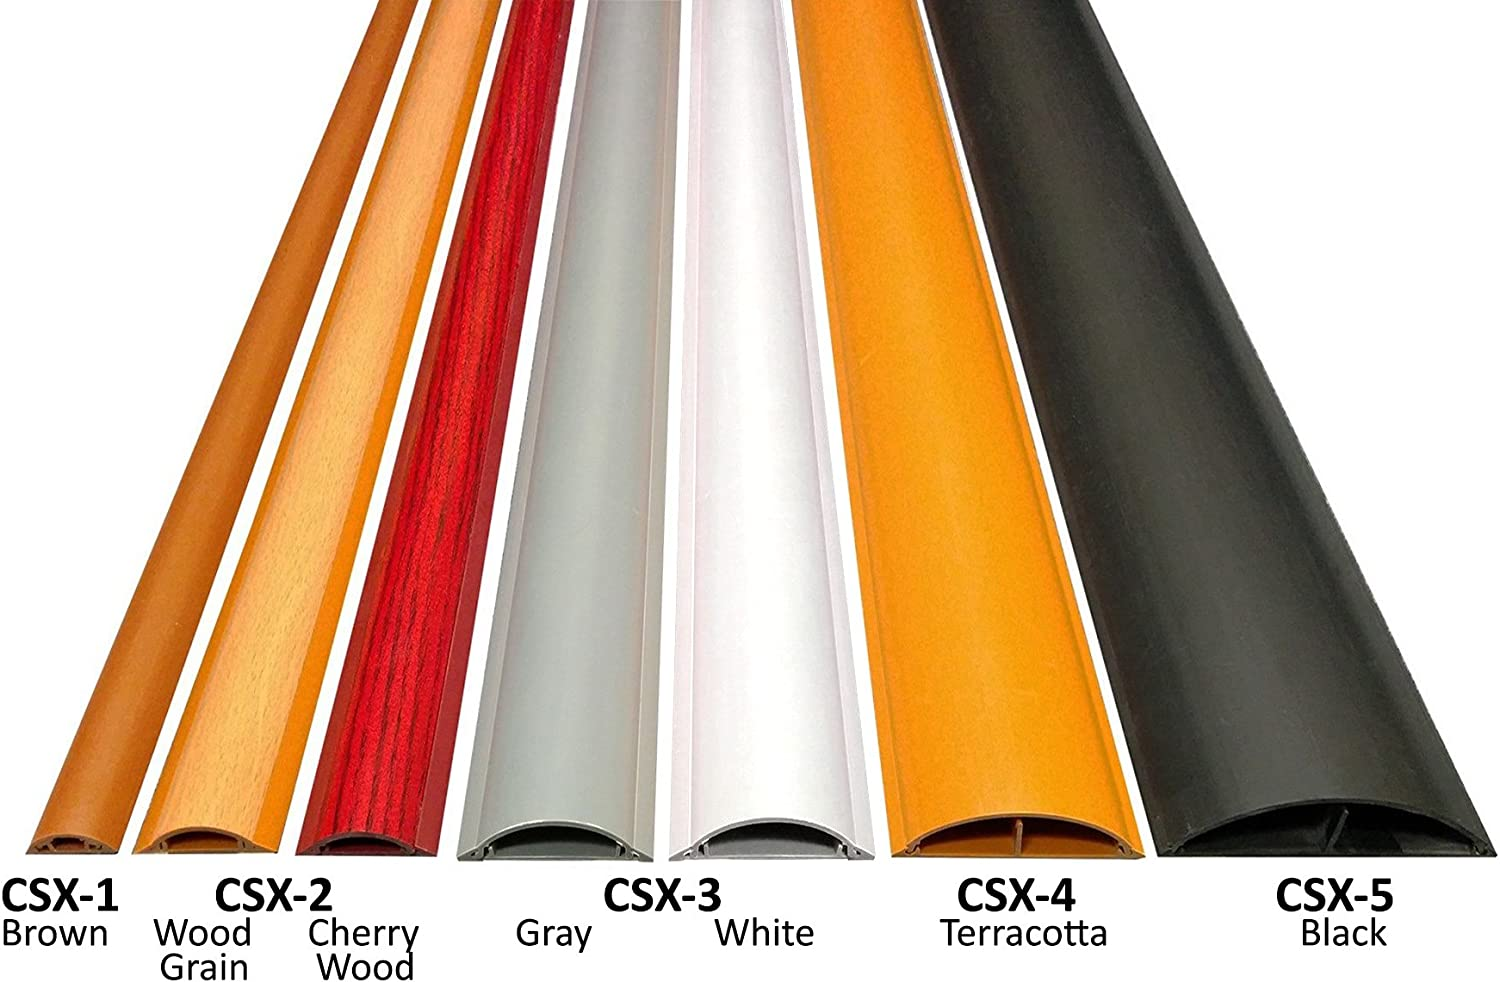 Color: Gray Model: CSX-2 Length: 36 Cable Shield Cord Cover